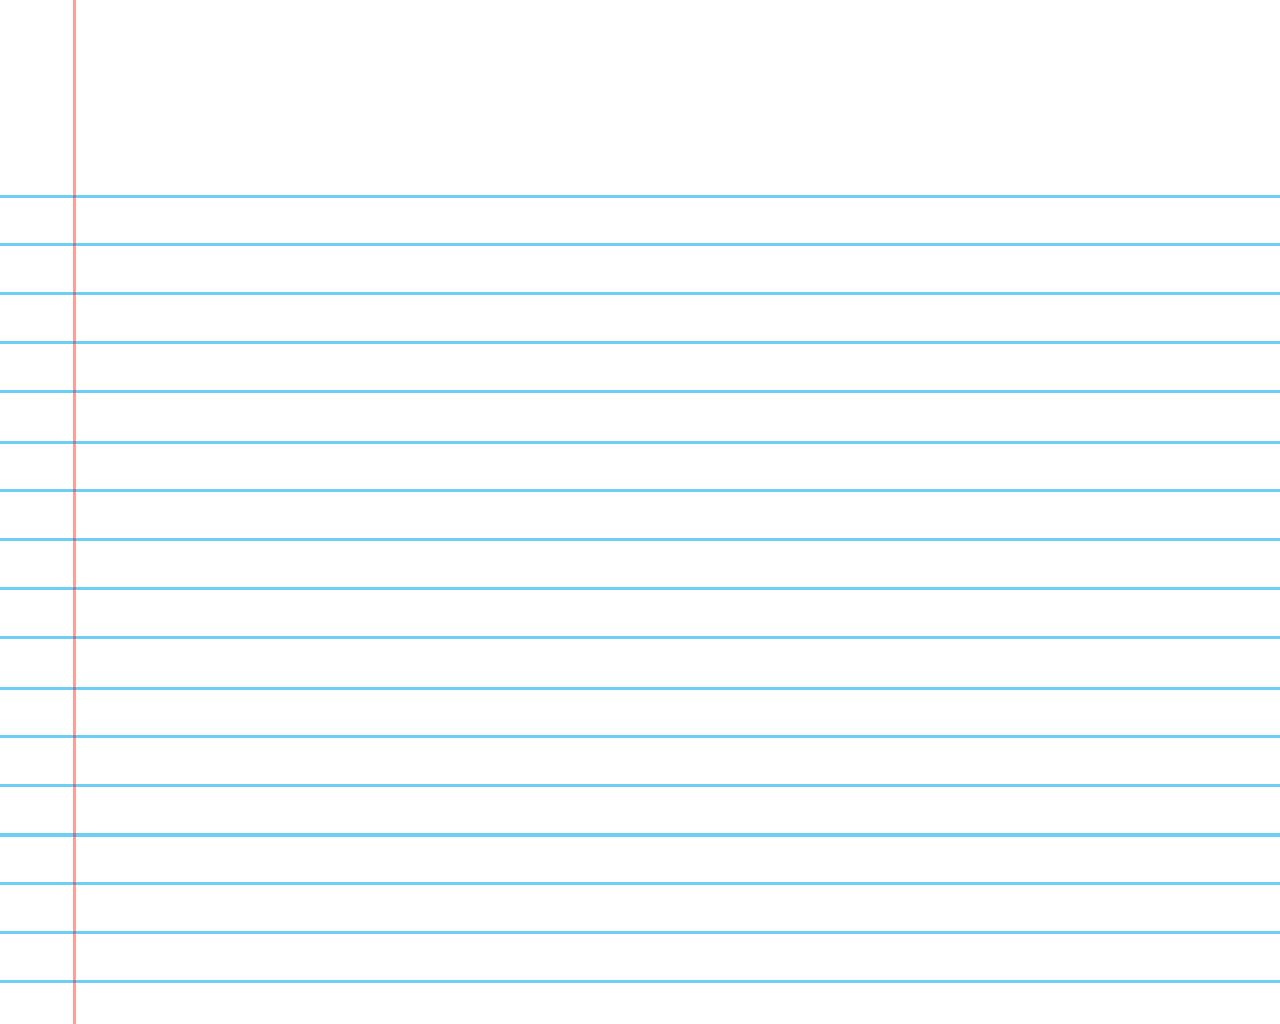 Notebook paper background related keywords suggestions - Wallpaper notebook paper ...